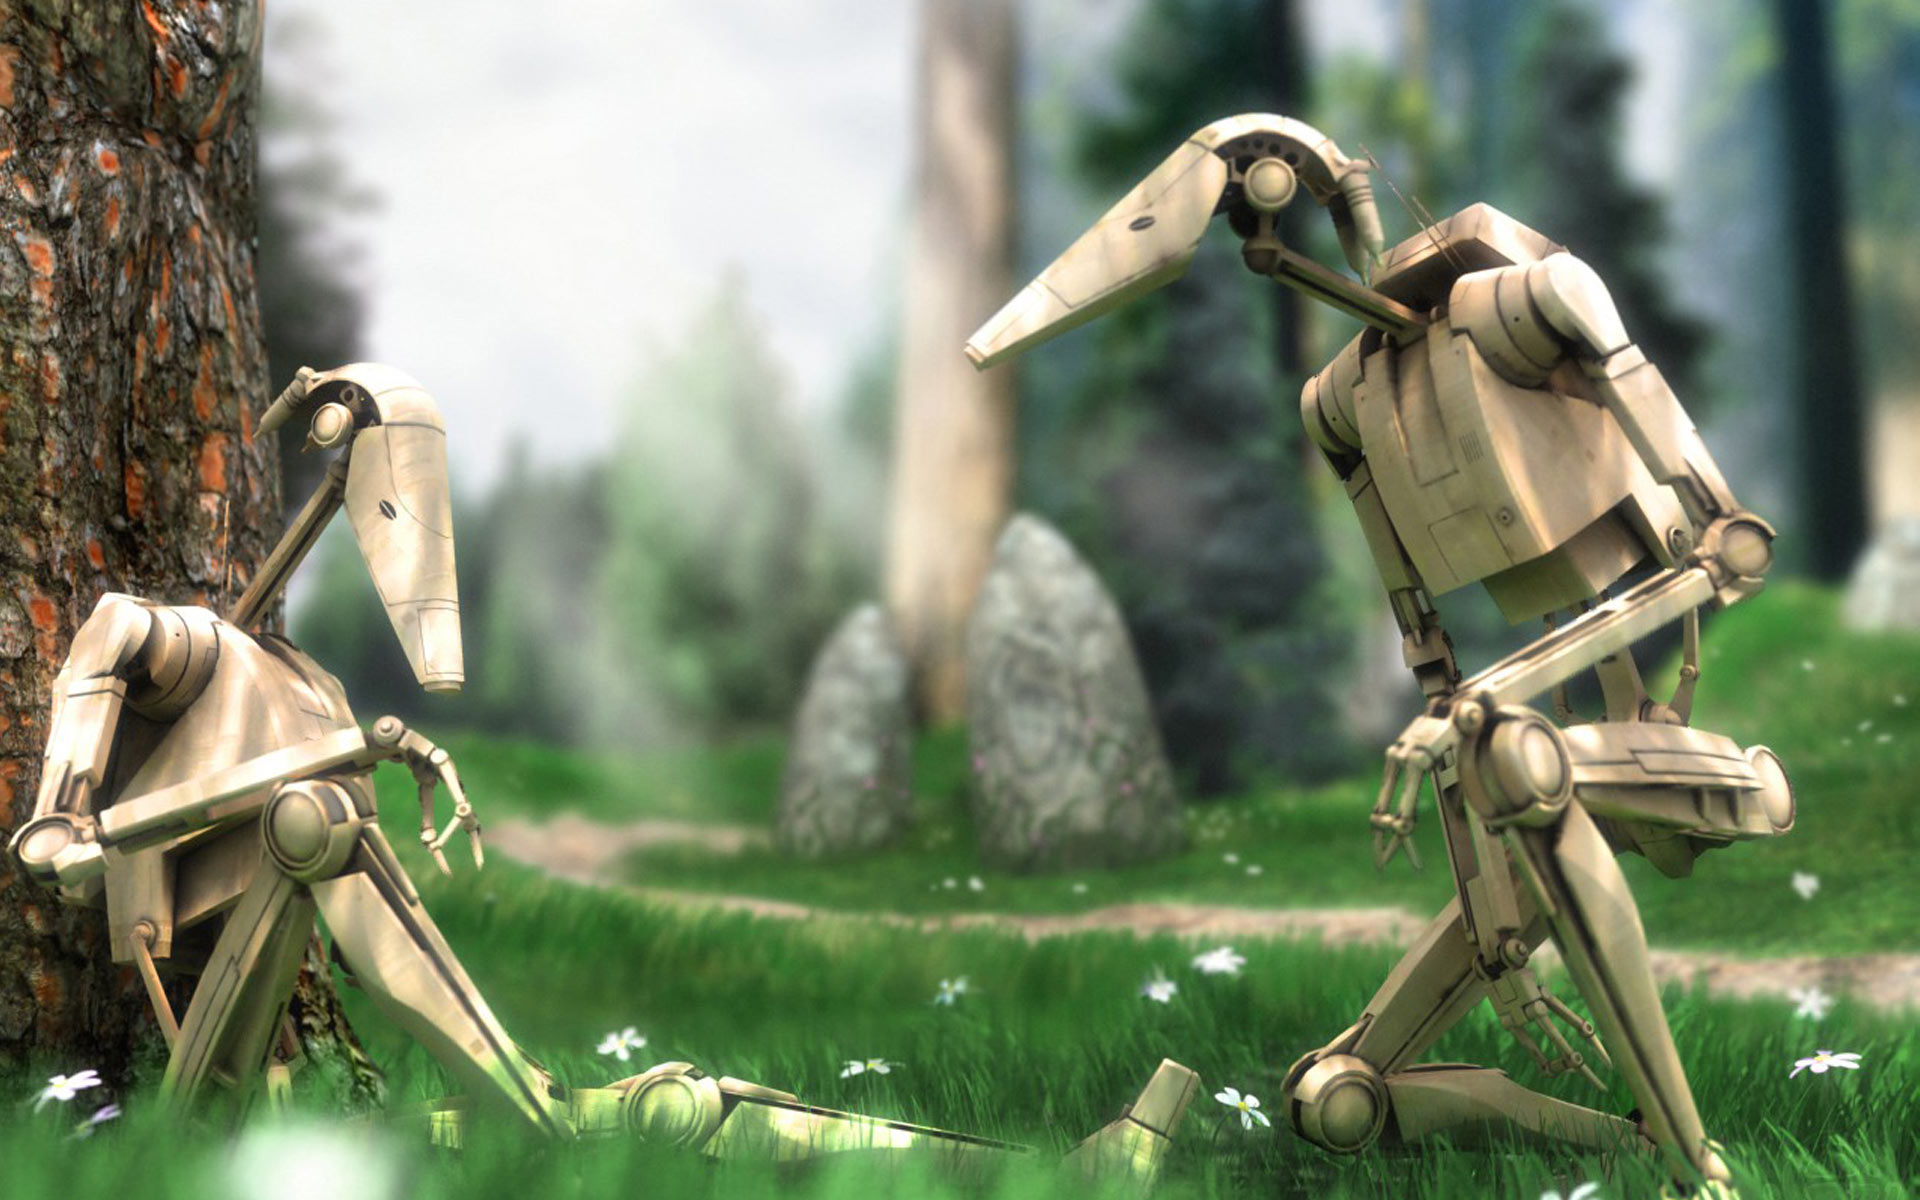 10 Battle Droid (Star Wars) HD Wallpapers